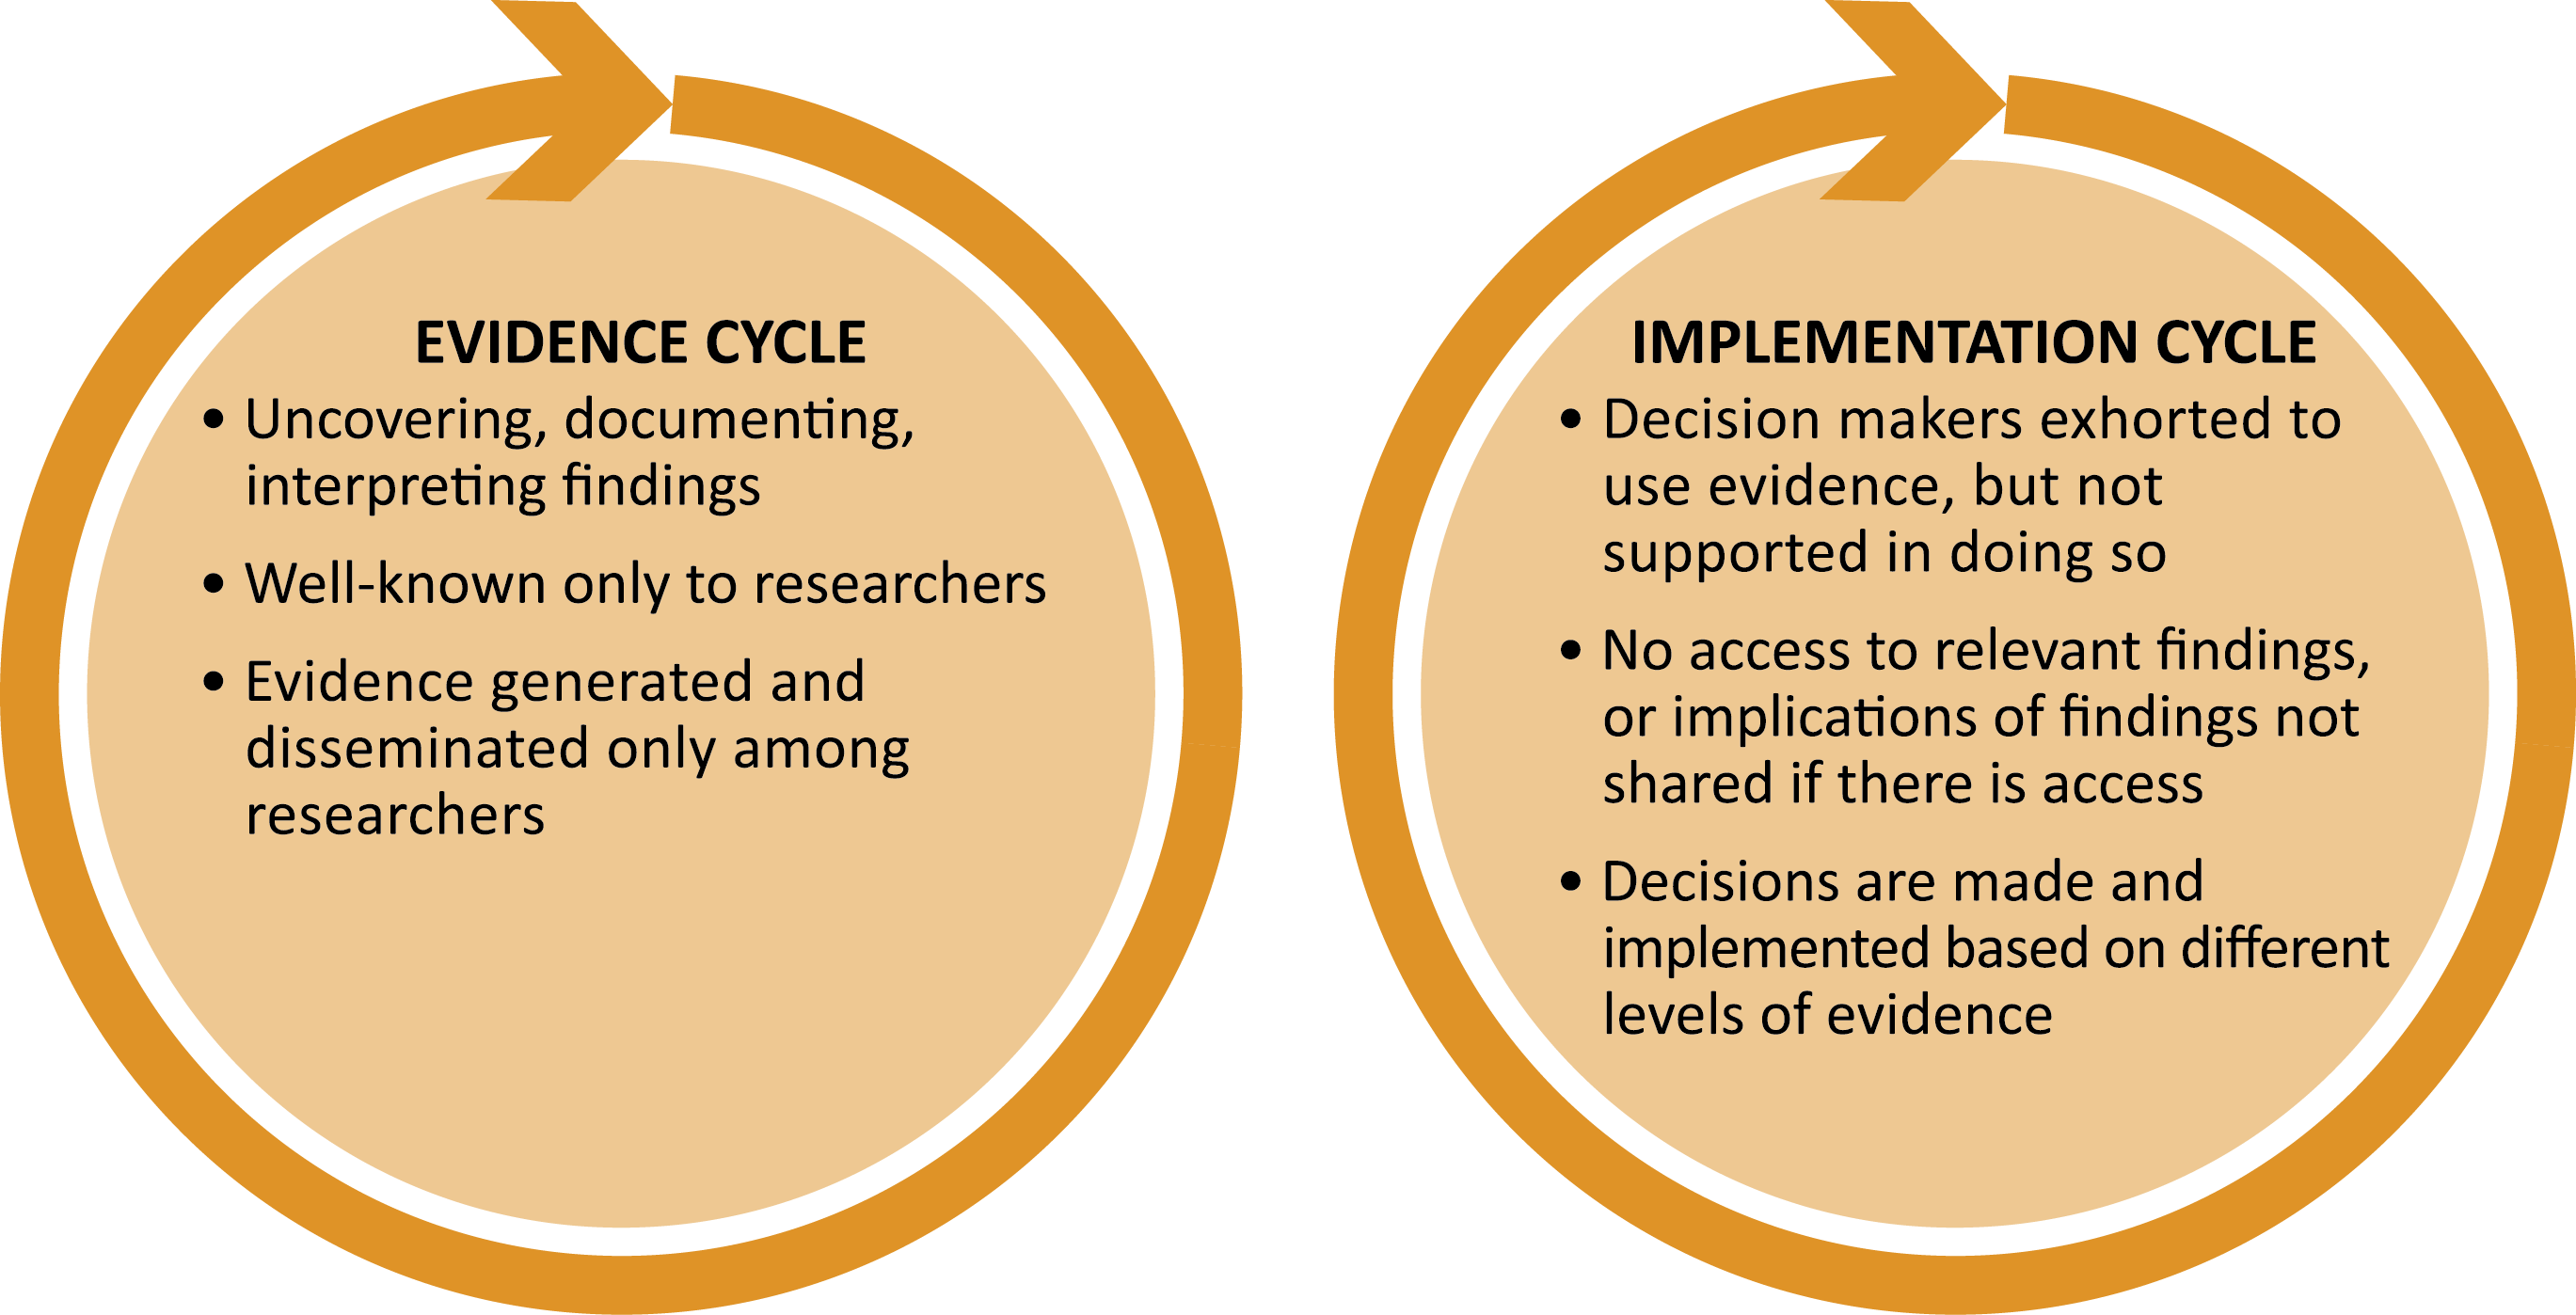 What-is-unique-about-the-researcher's-role_evidenceCycle.png#asset:457